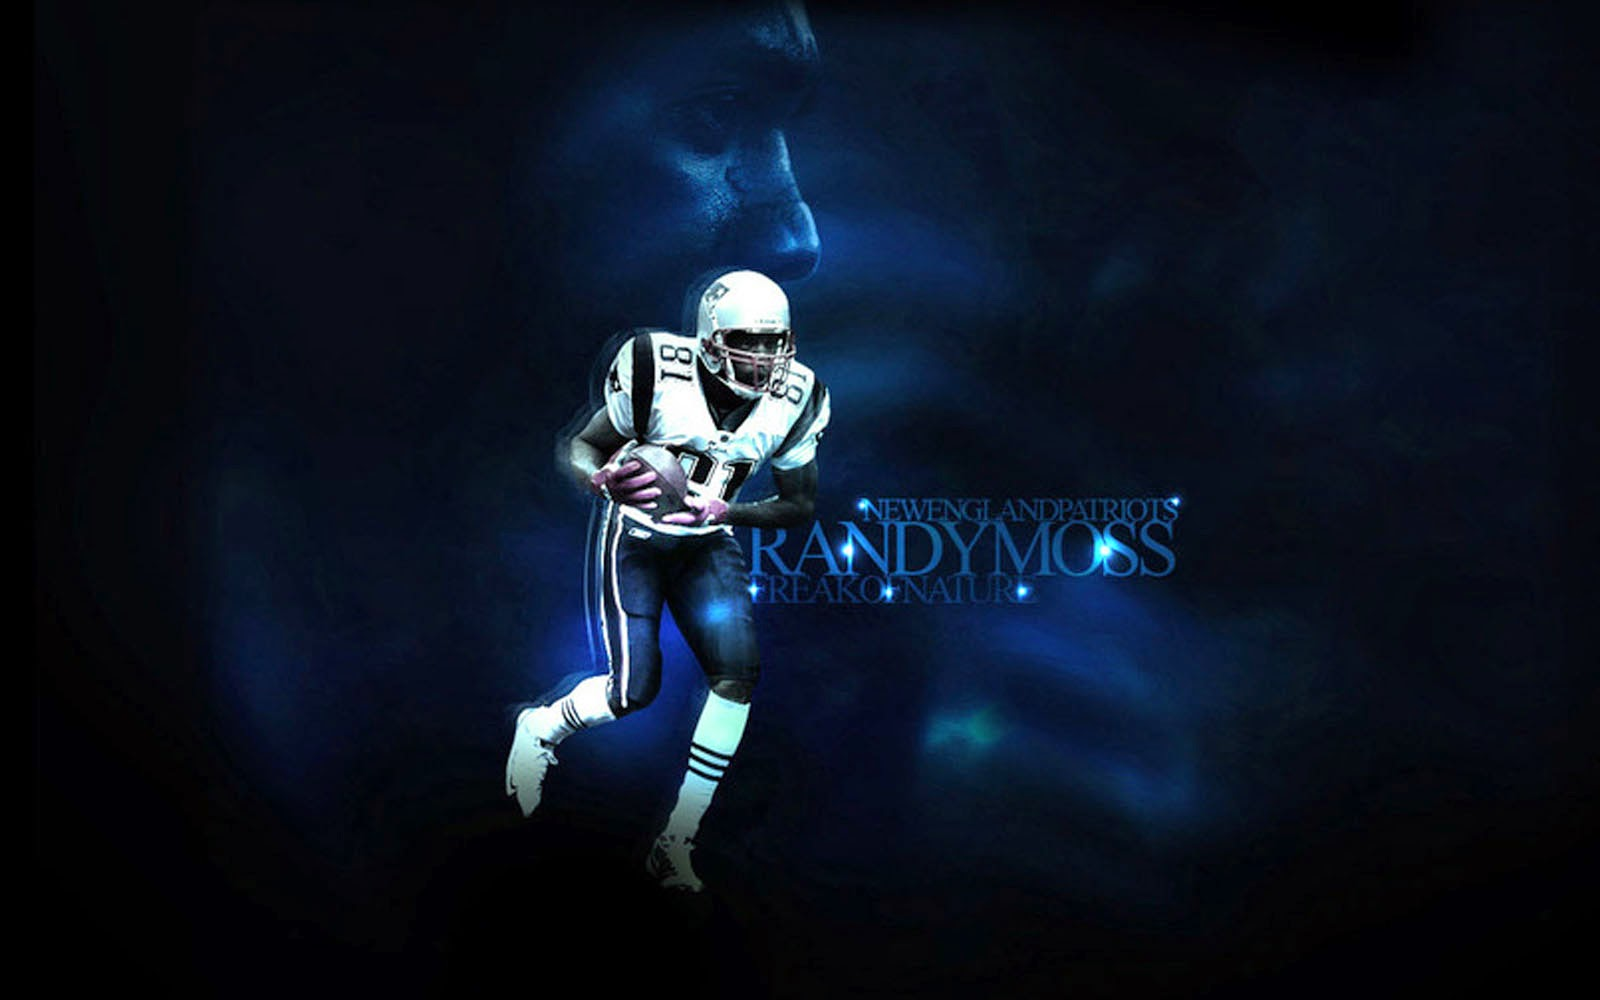 Player Randy Moss Desktop Wallpapers American Football Player 1600x1000